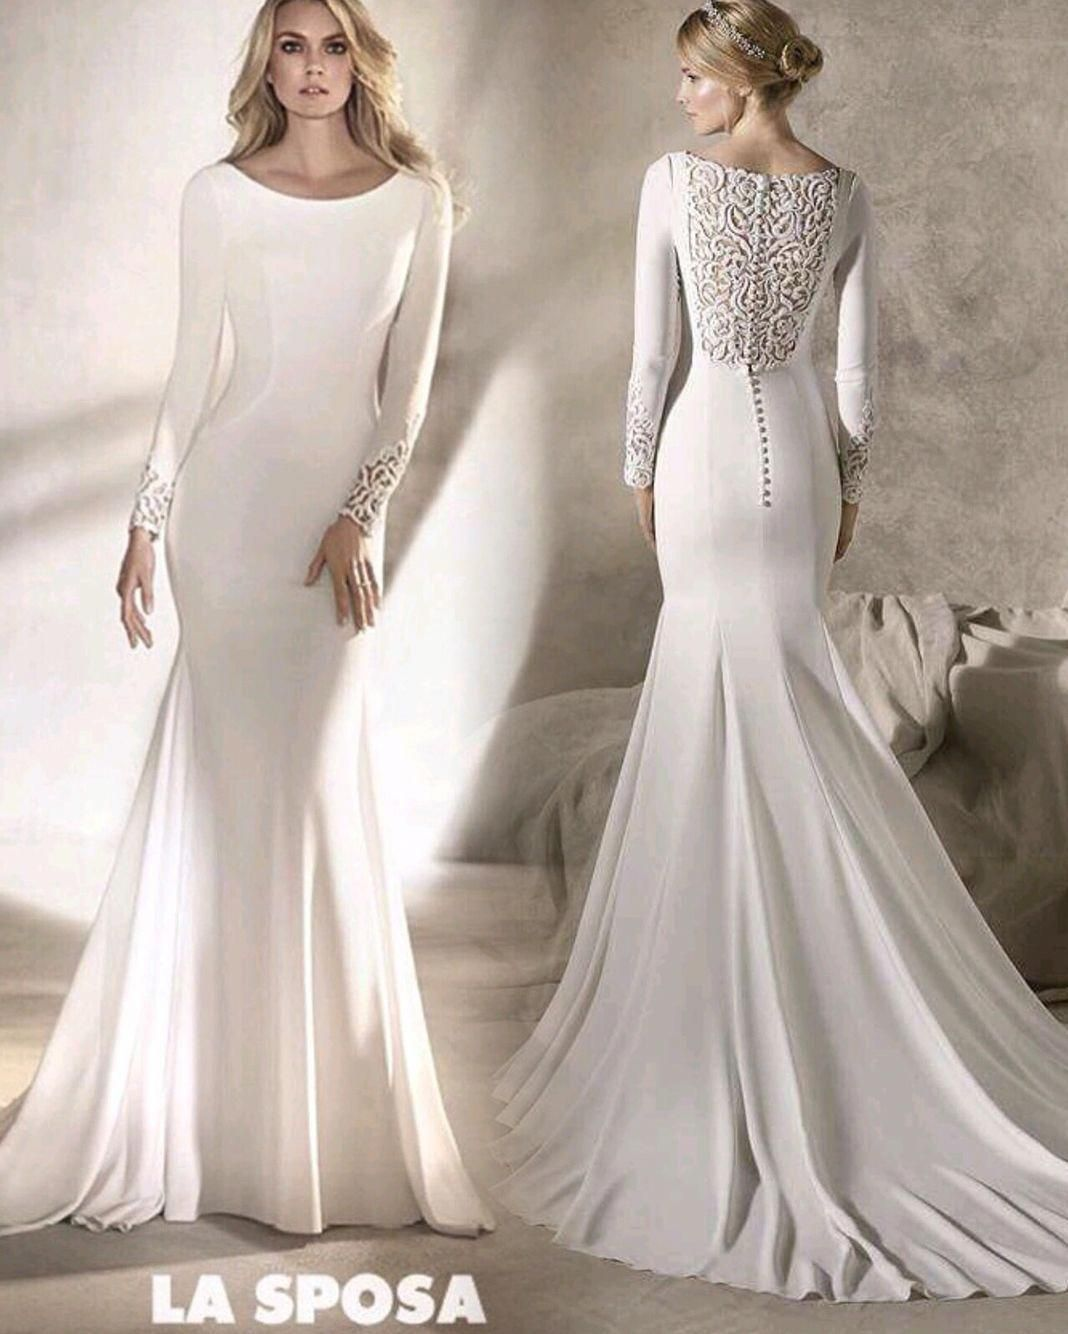 Sweet Wedding Dresses Style Id 3374574233 Incredible And Charming Dress Style Ideas For A Wonderf Bridal Dresses Mermaid Plain Wedding Dress Wedding Dresses [ 1334 x 1068 Pixel ]